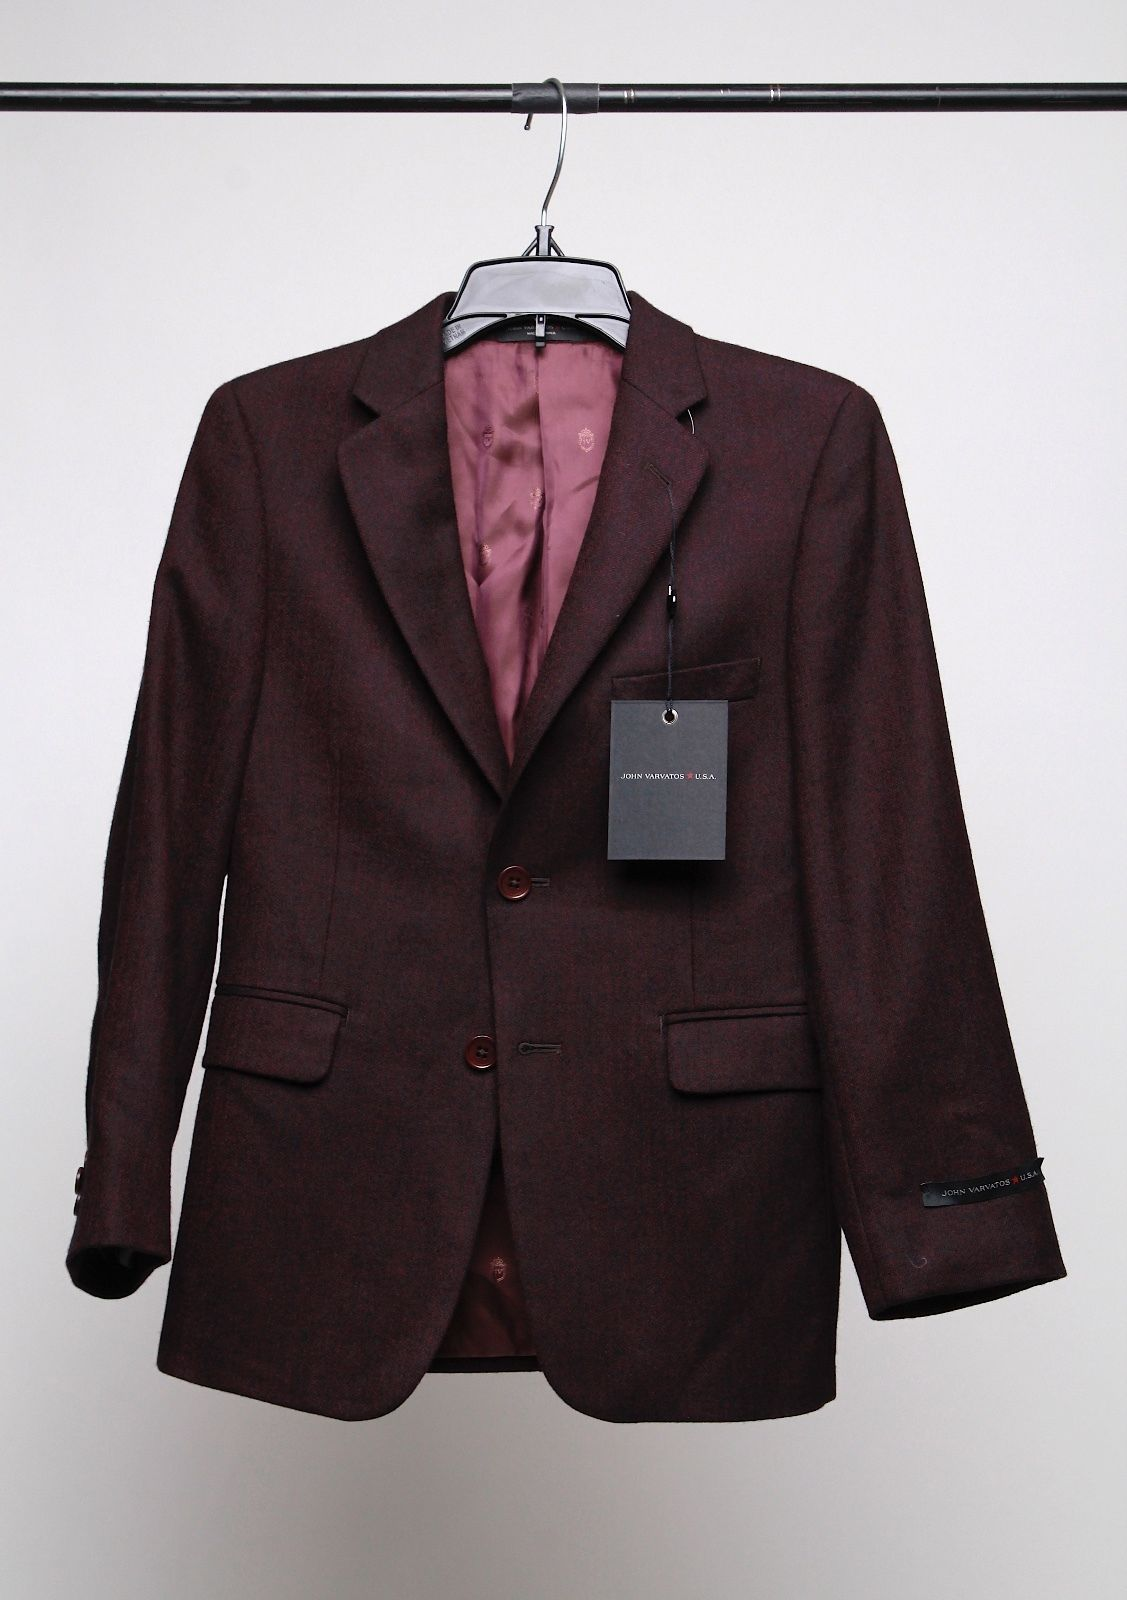 Primary image for John Varvatos Boys' Herringbone Sport Coat Burgundy Size 8R